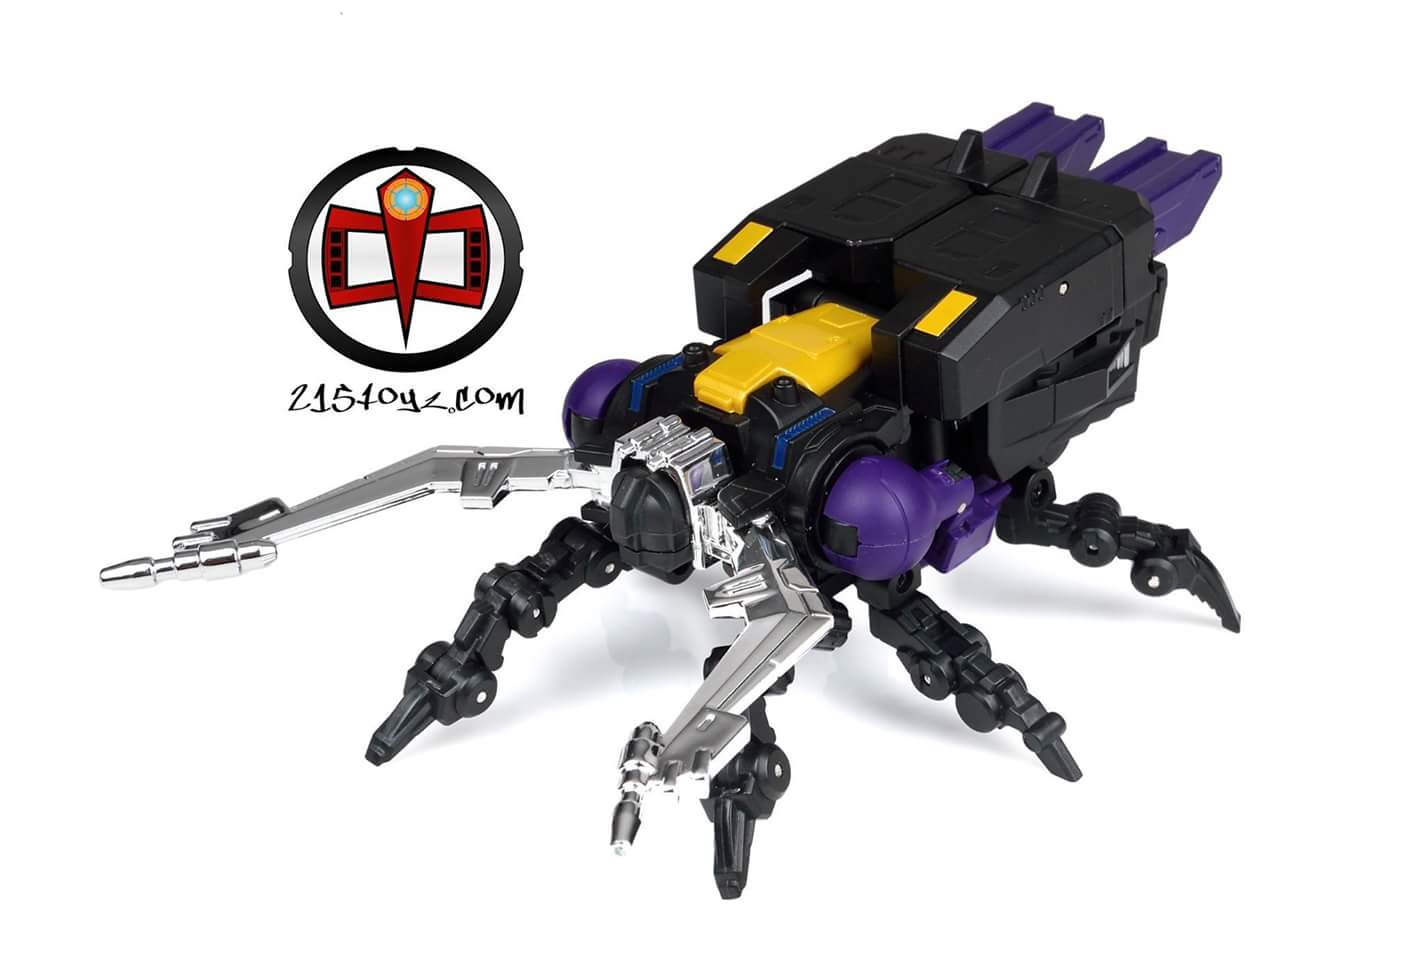 [Fanstoys] Produit Tiers - Jouet FT-12 Grenadier / FT-13 Mercenary / FT-14 Forager - aka Insecticons - Page 2 Ki9oBBYC